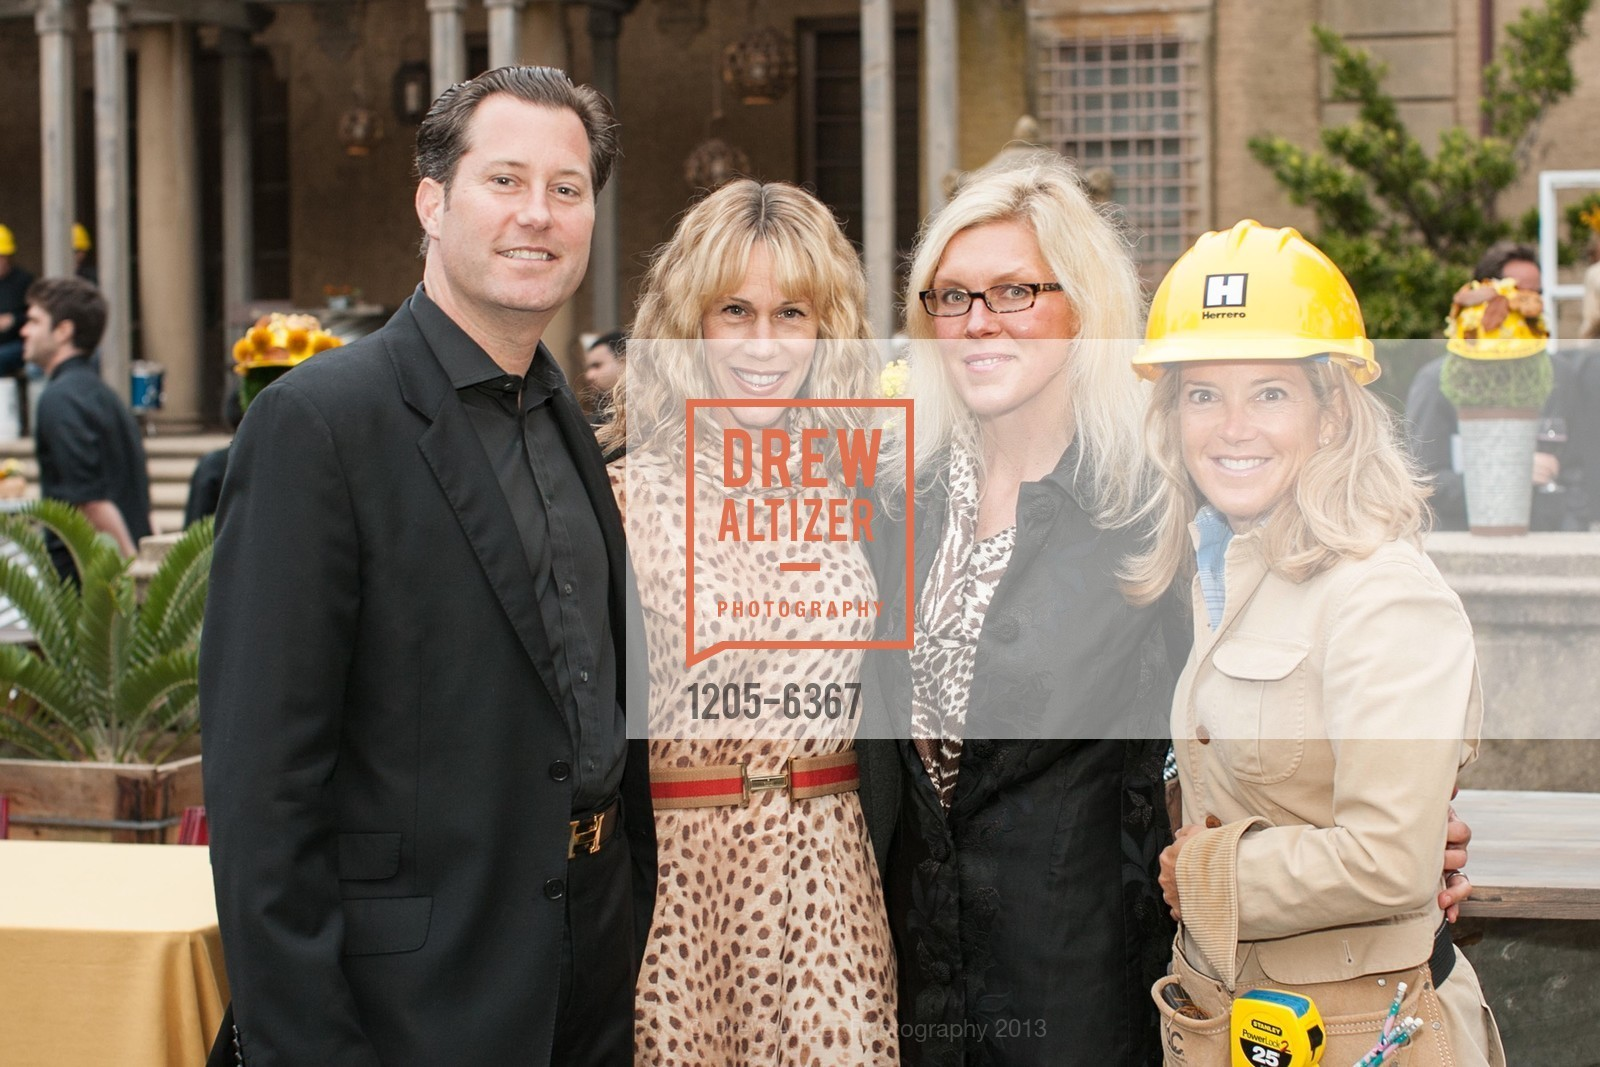 Patrick Barber, Melissa Barber, Holly Farrell, Kathryn Lasater, ZooFest 2013 Hard Hat & Tails, US, May 11th, 2013,Drew Altizer, Drew Altizer Photography, full-service agency, private events, San Francisco photographer, photographer california